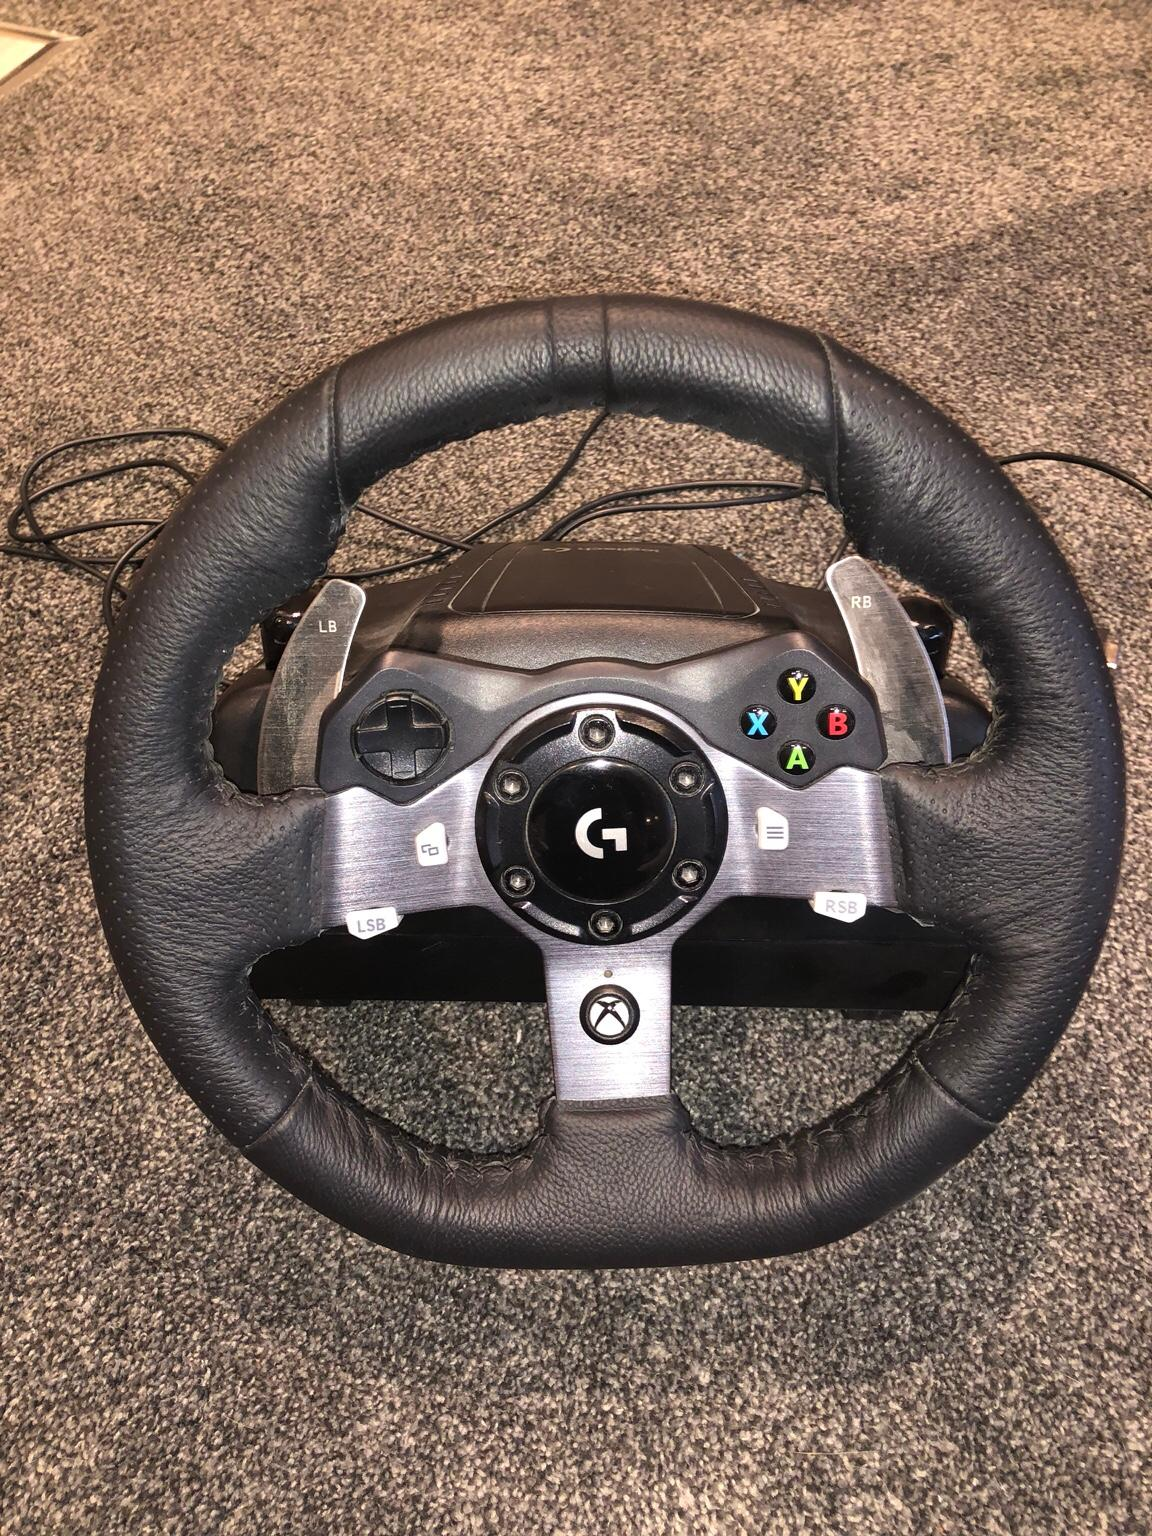 788ad8df8c9 Logitech g920 with shifter in DA7 Bexley for £140.00 - Shpock